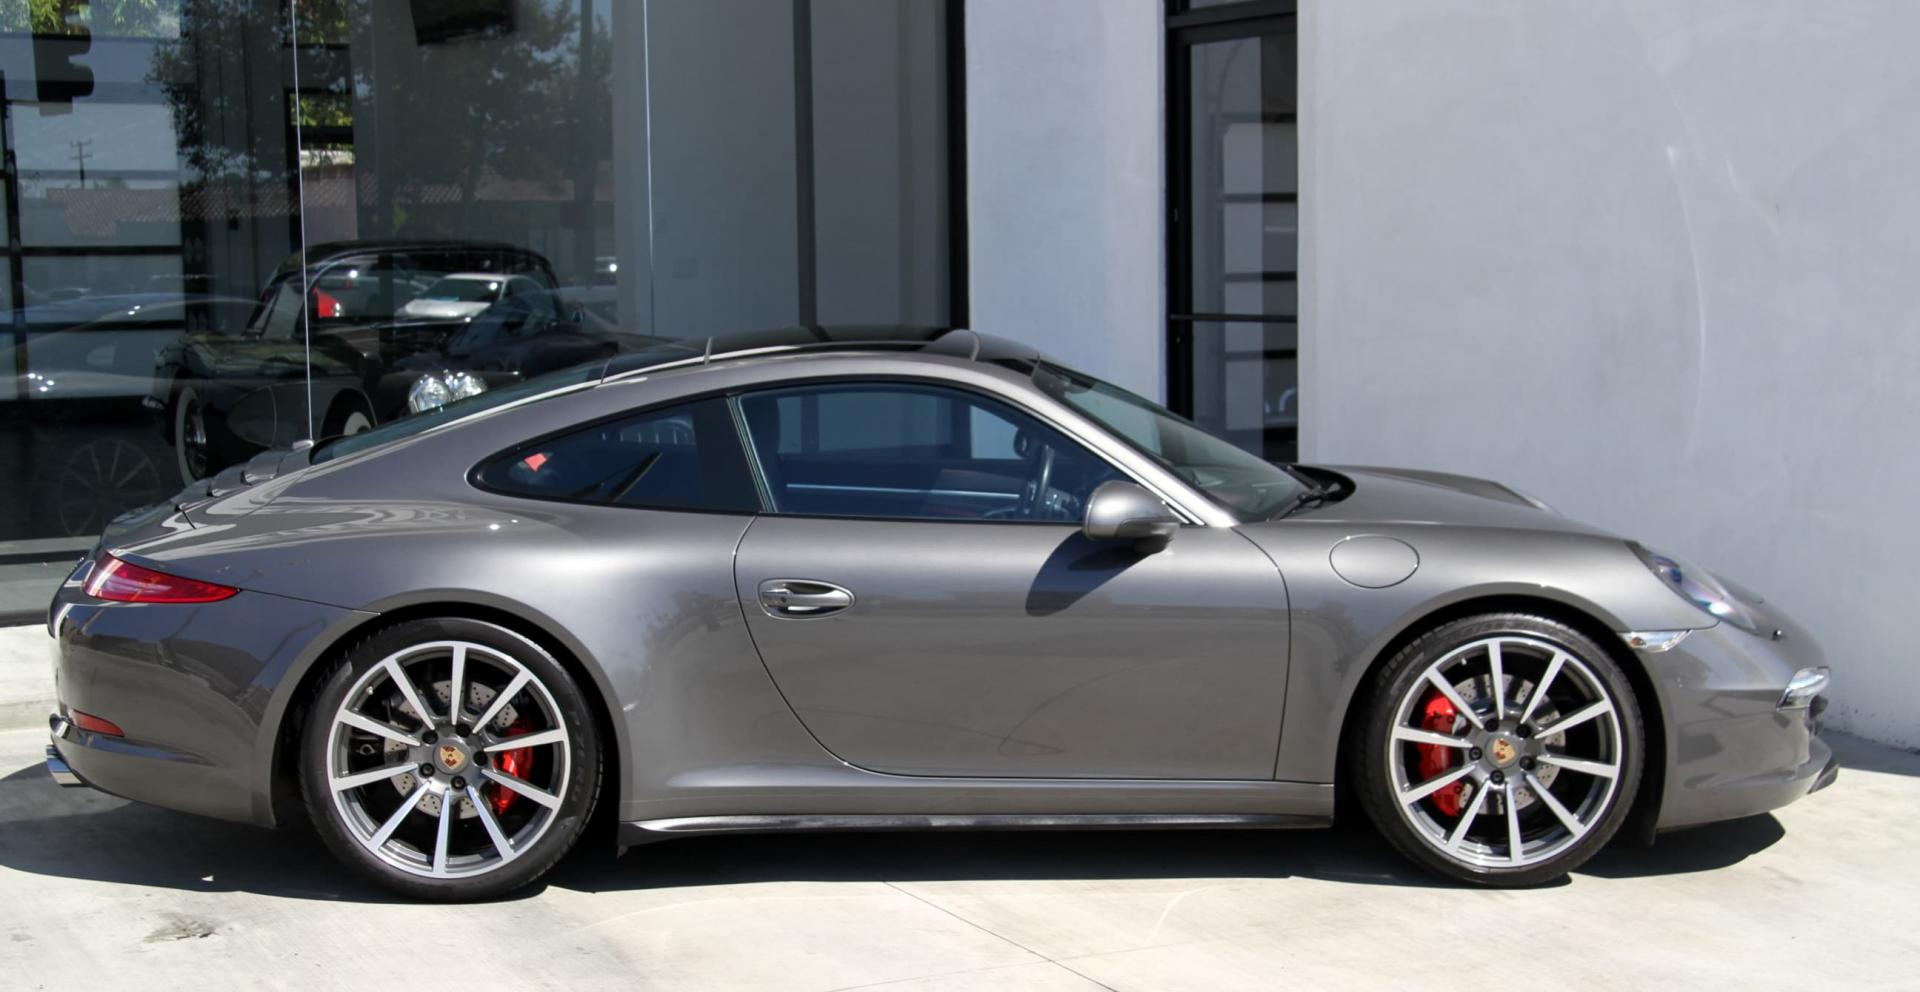 2014 porsche 911 carrera 4s stock 6015 for sale near. Black Bedroom Furniture Sets. Home Design Ideas